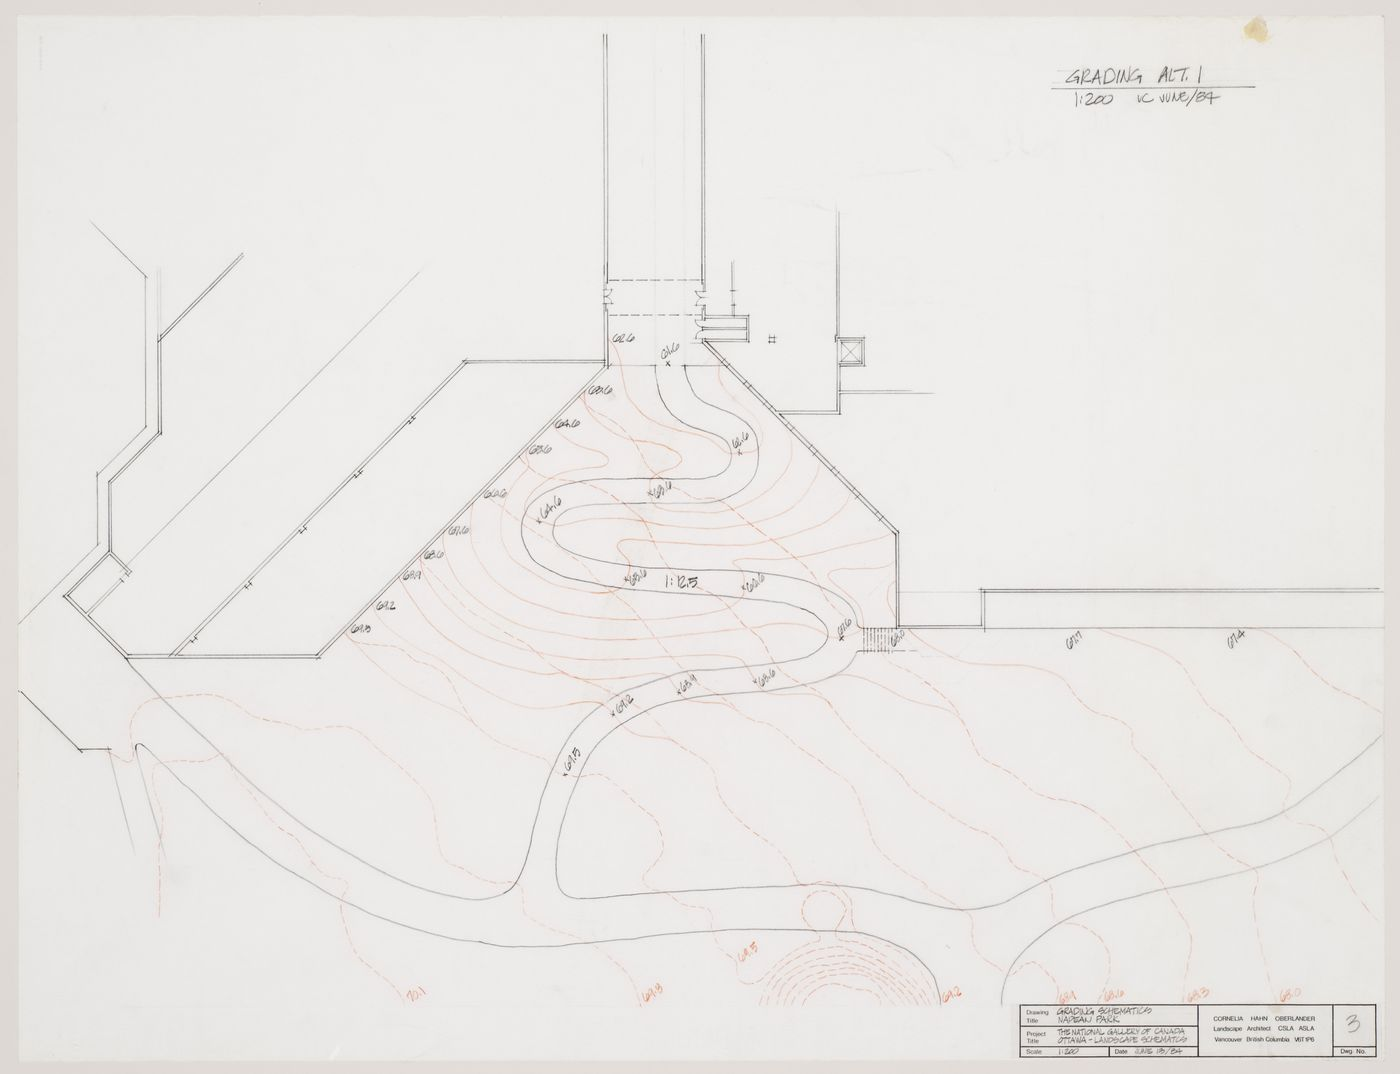 Grading schematic, National Gallery of Canada, Ottawa, Ontario